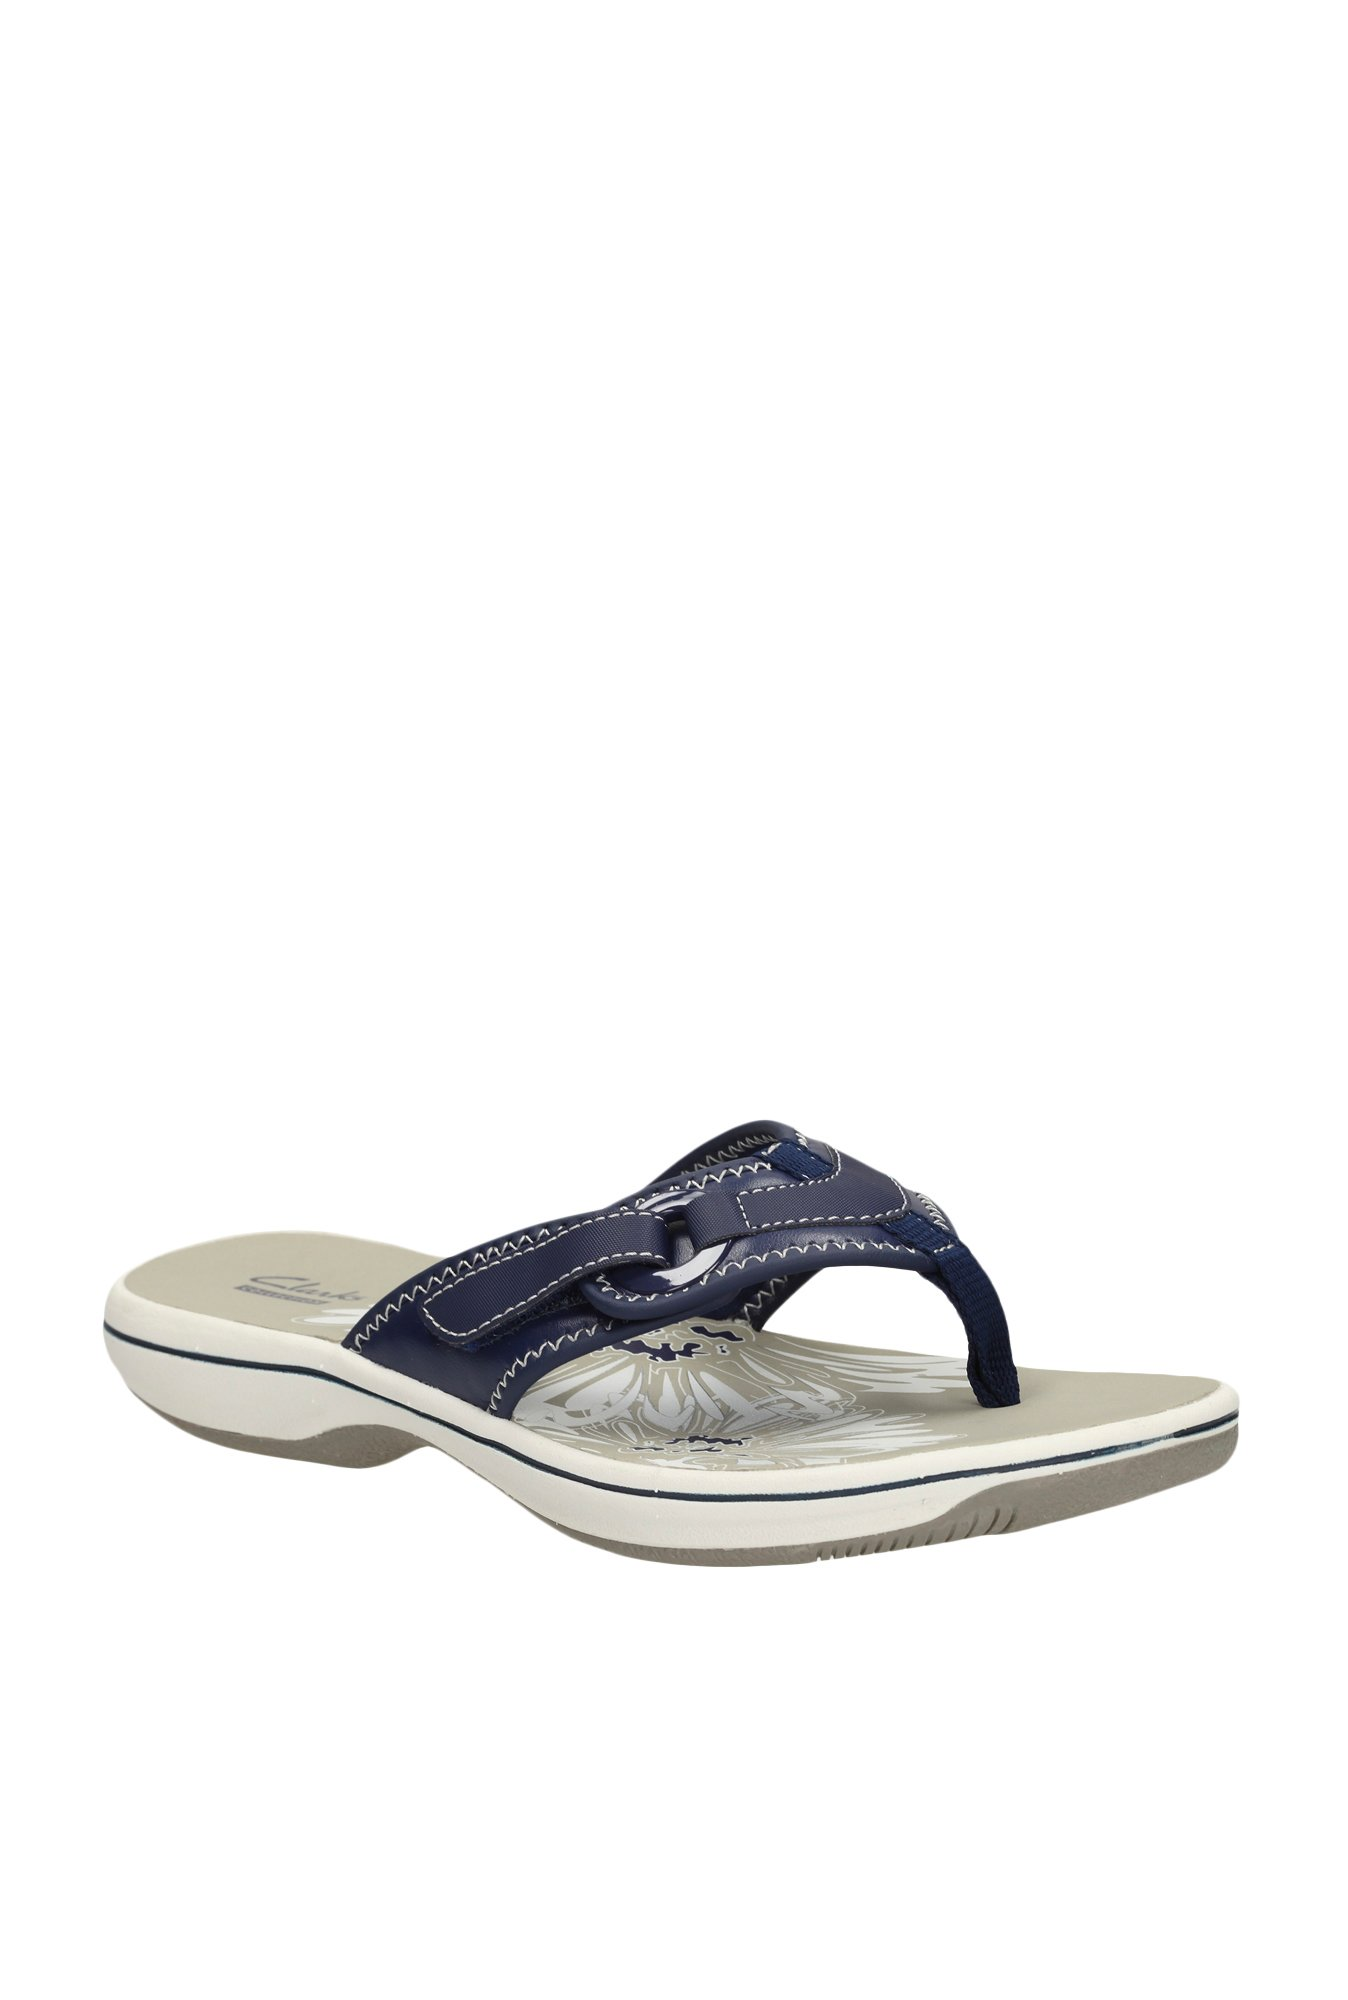 715dcf4aa72 Buy Clarks Brinkley Mila Navy Thong Sandals for Women at Best Price   Tata  CLiQ